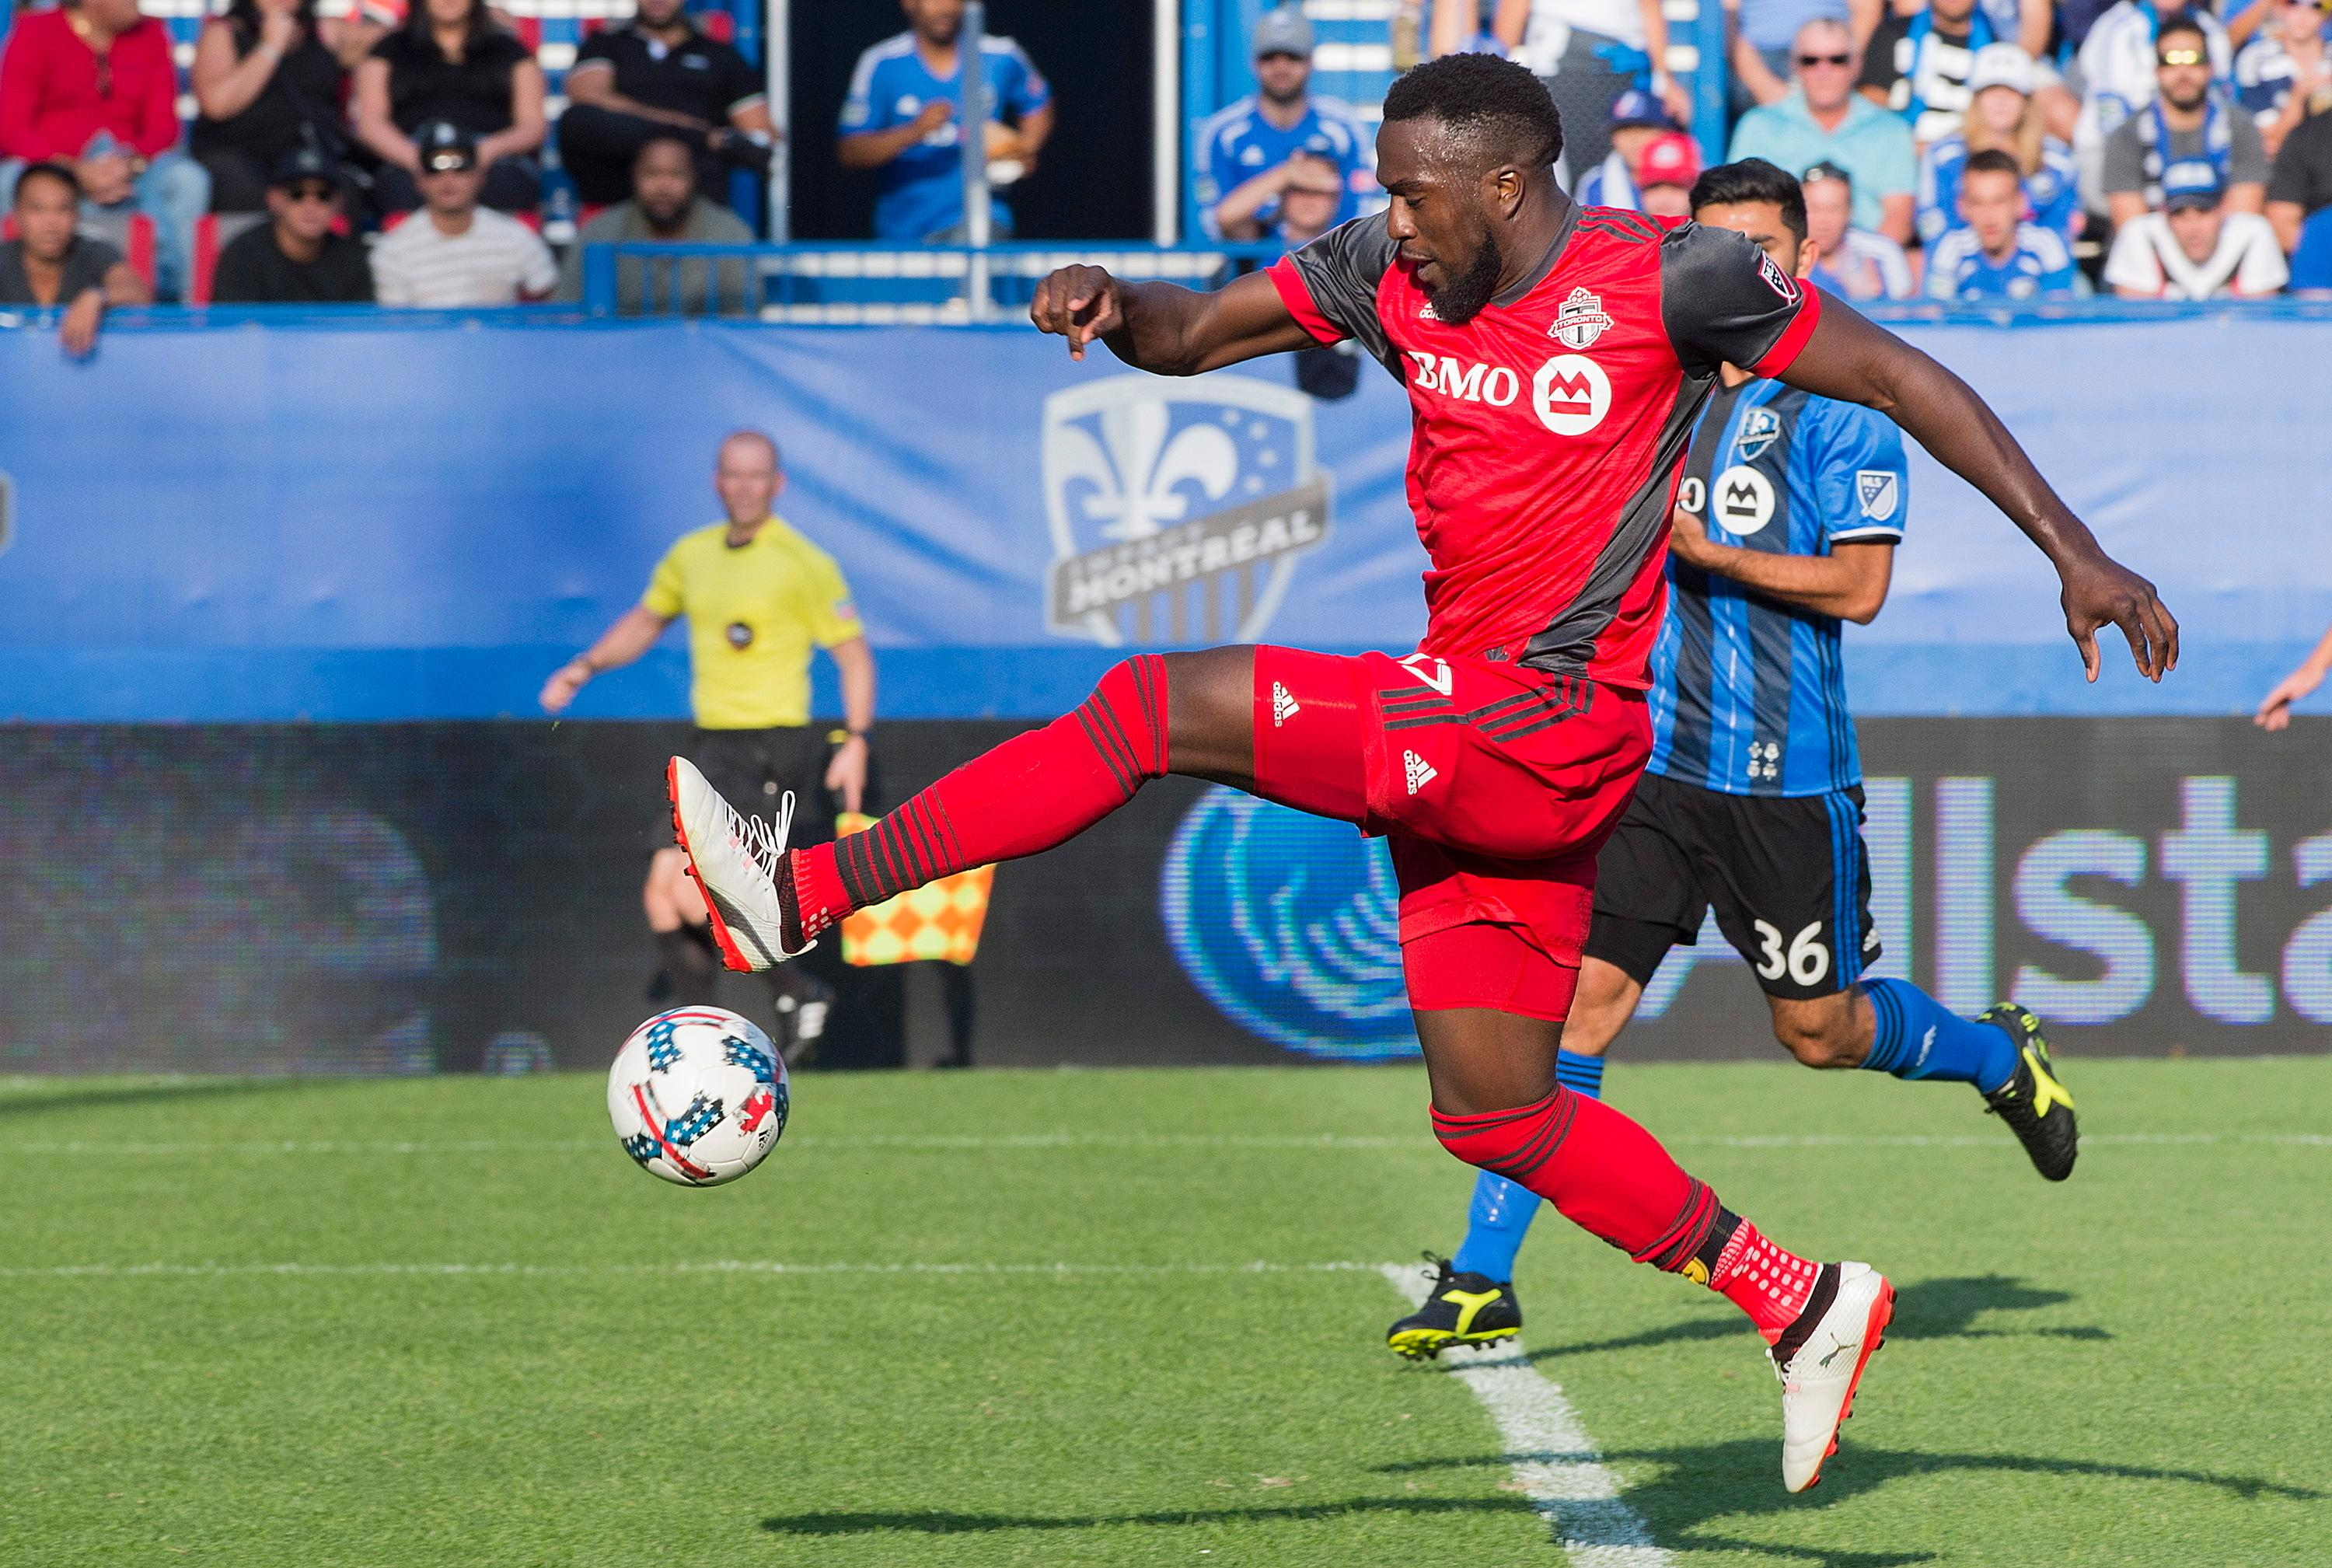 FILE - In this Sunday, Aug. 27, 2017 file photo, Toronto FC's Jozy Altidore scores against the Montreal Impact during second half MLS soccer action in Montreal. Toronto FC needs to beat the defending champion Seattle Sounders to cap their record-breaking regular season with an MLS Cup crown. Led by Altidore, fellow U.S. international Michael Bradley and 2015 league MVP Sebastian Giovinco, Toronto set a league record with 69 points this season.(Graham Hughes/The Canadian Press via AP, File)